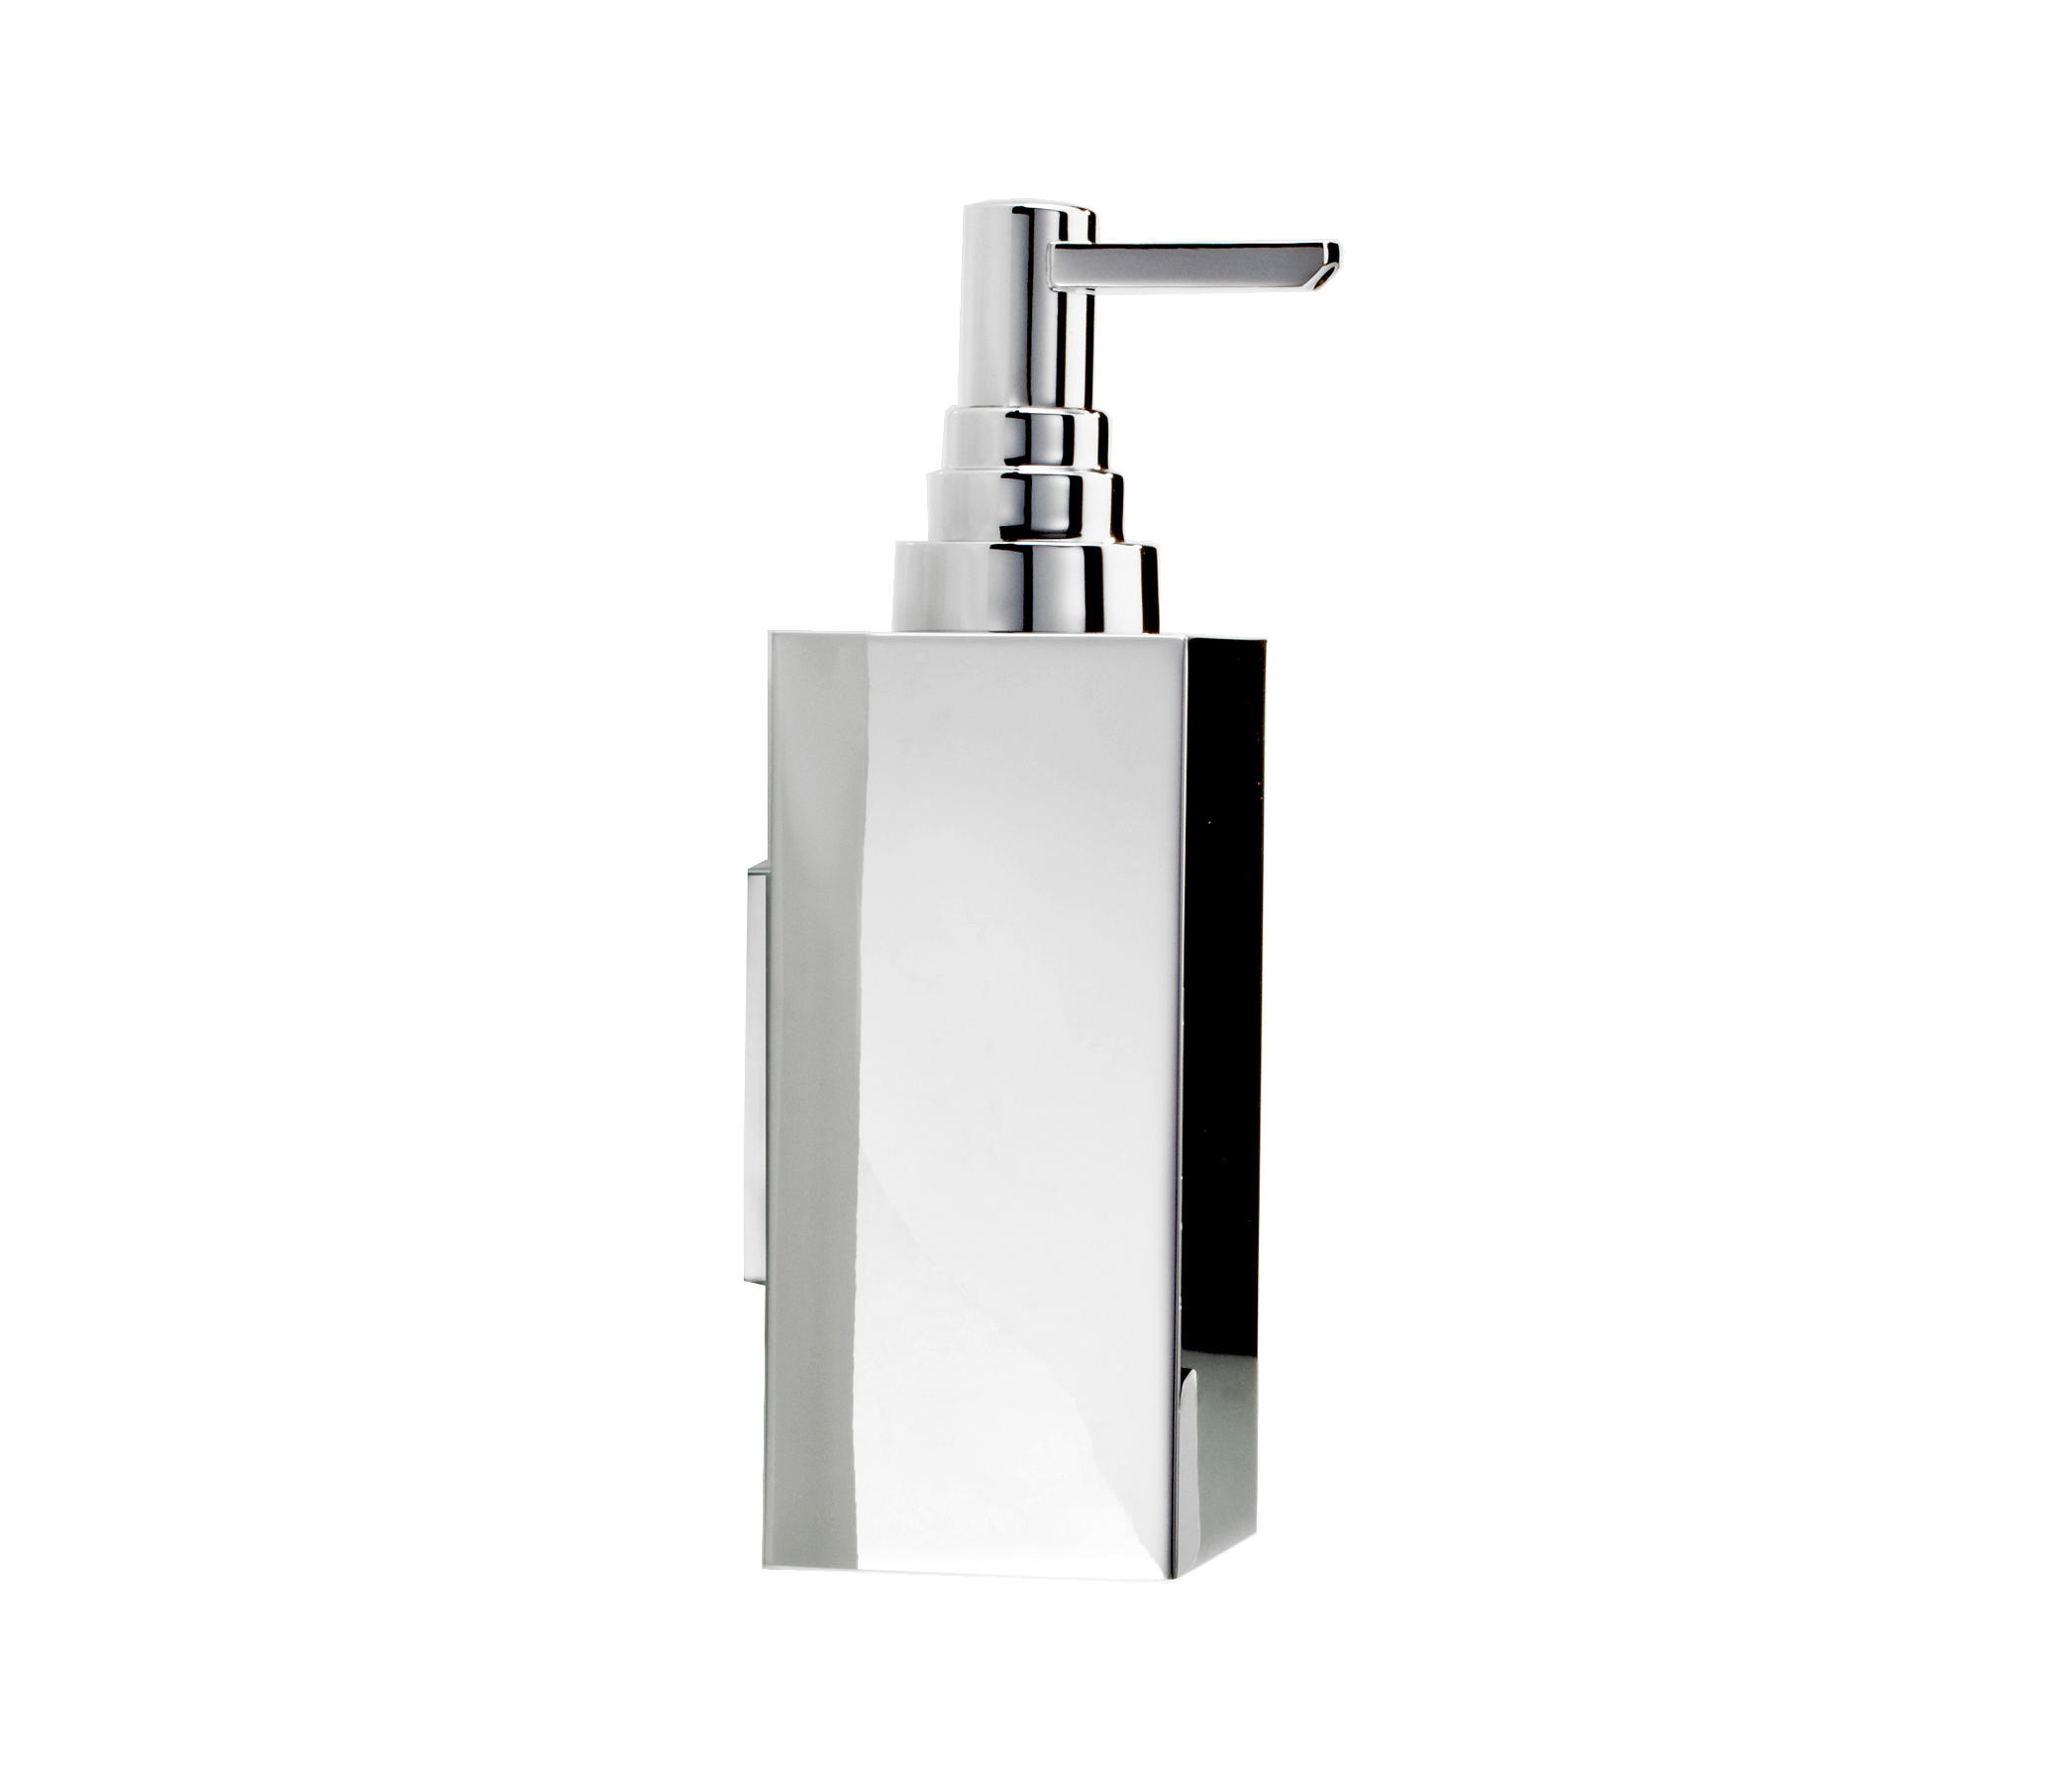 Decor Walther Dw 350 N Soap Dispensers From Decor Walther Architonic